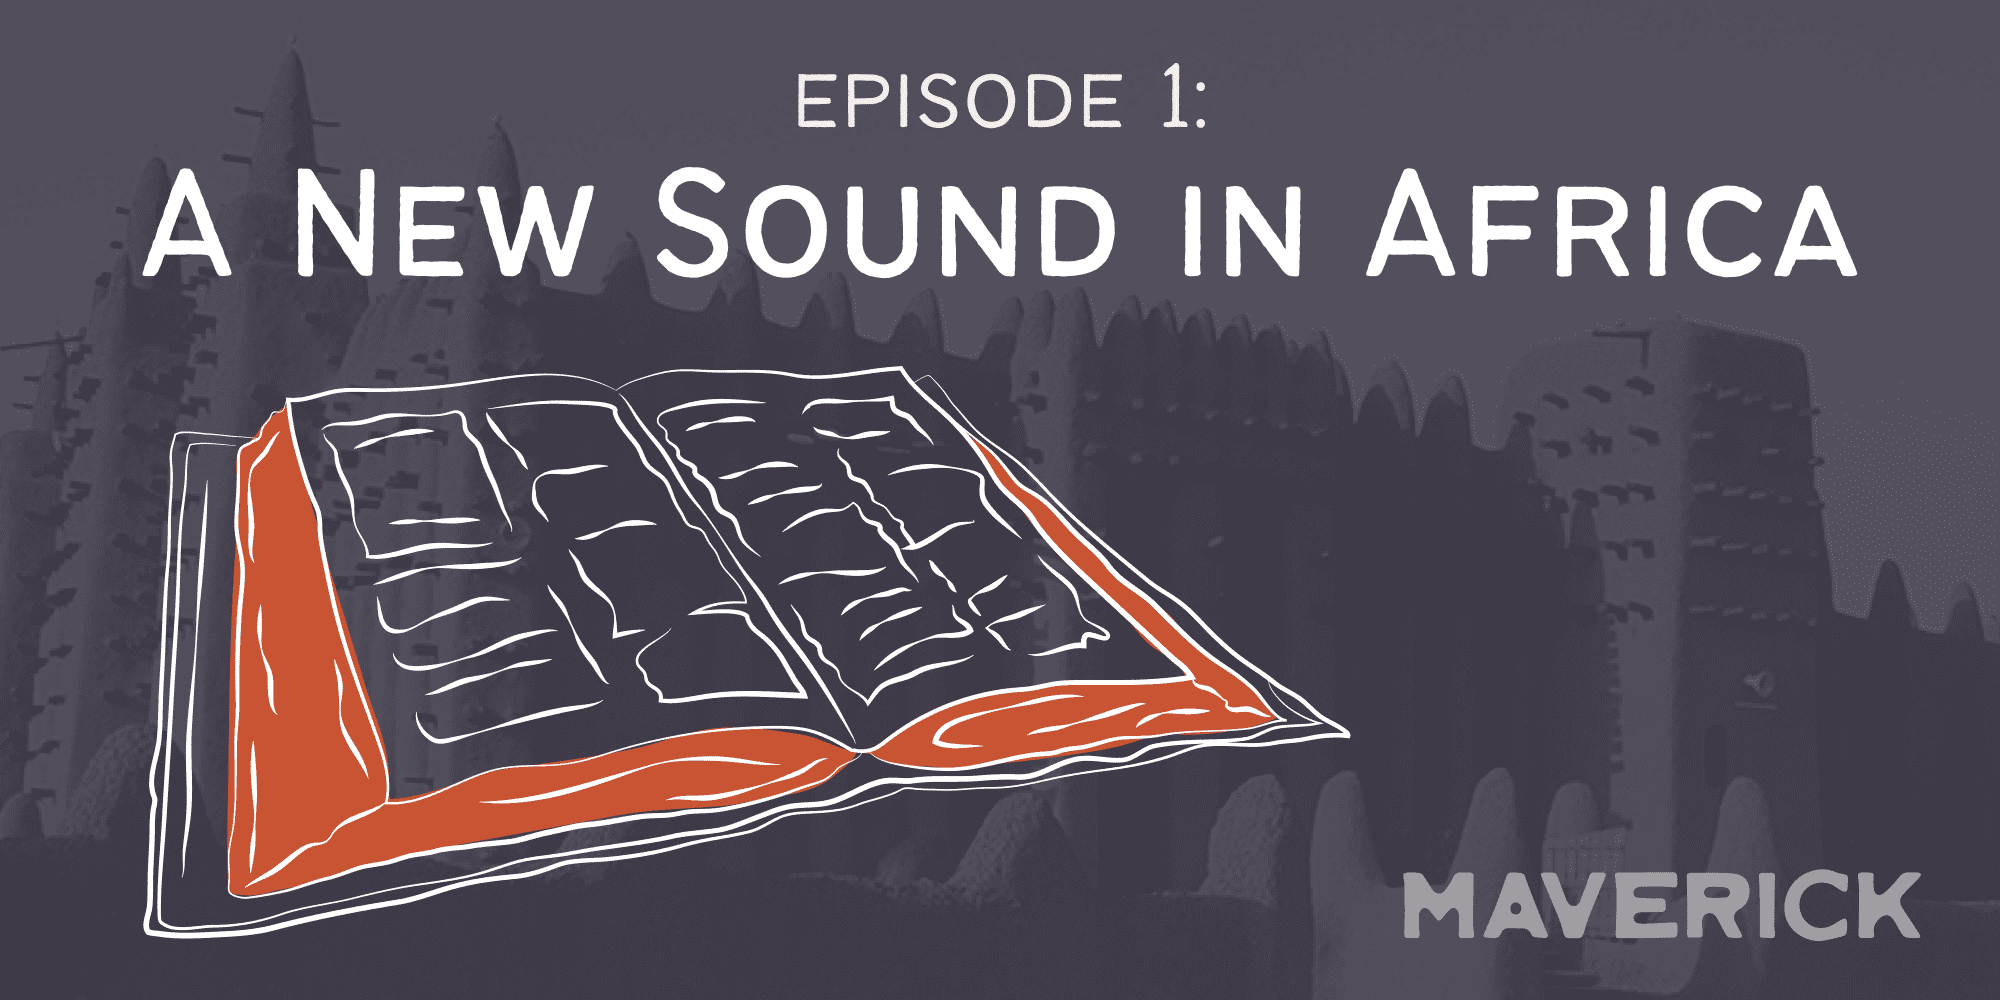 A New Sound in Africa